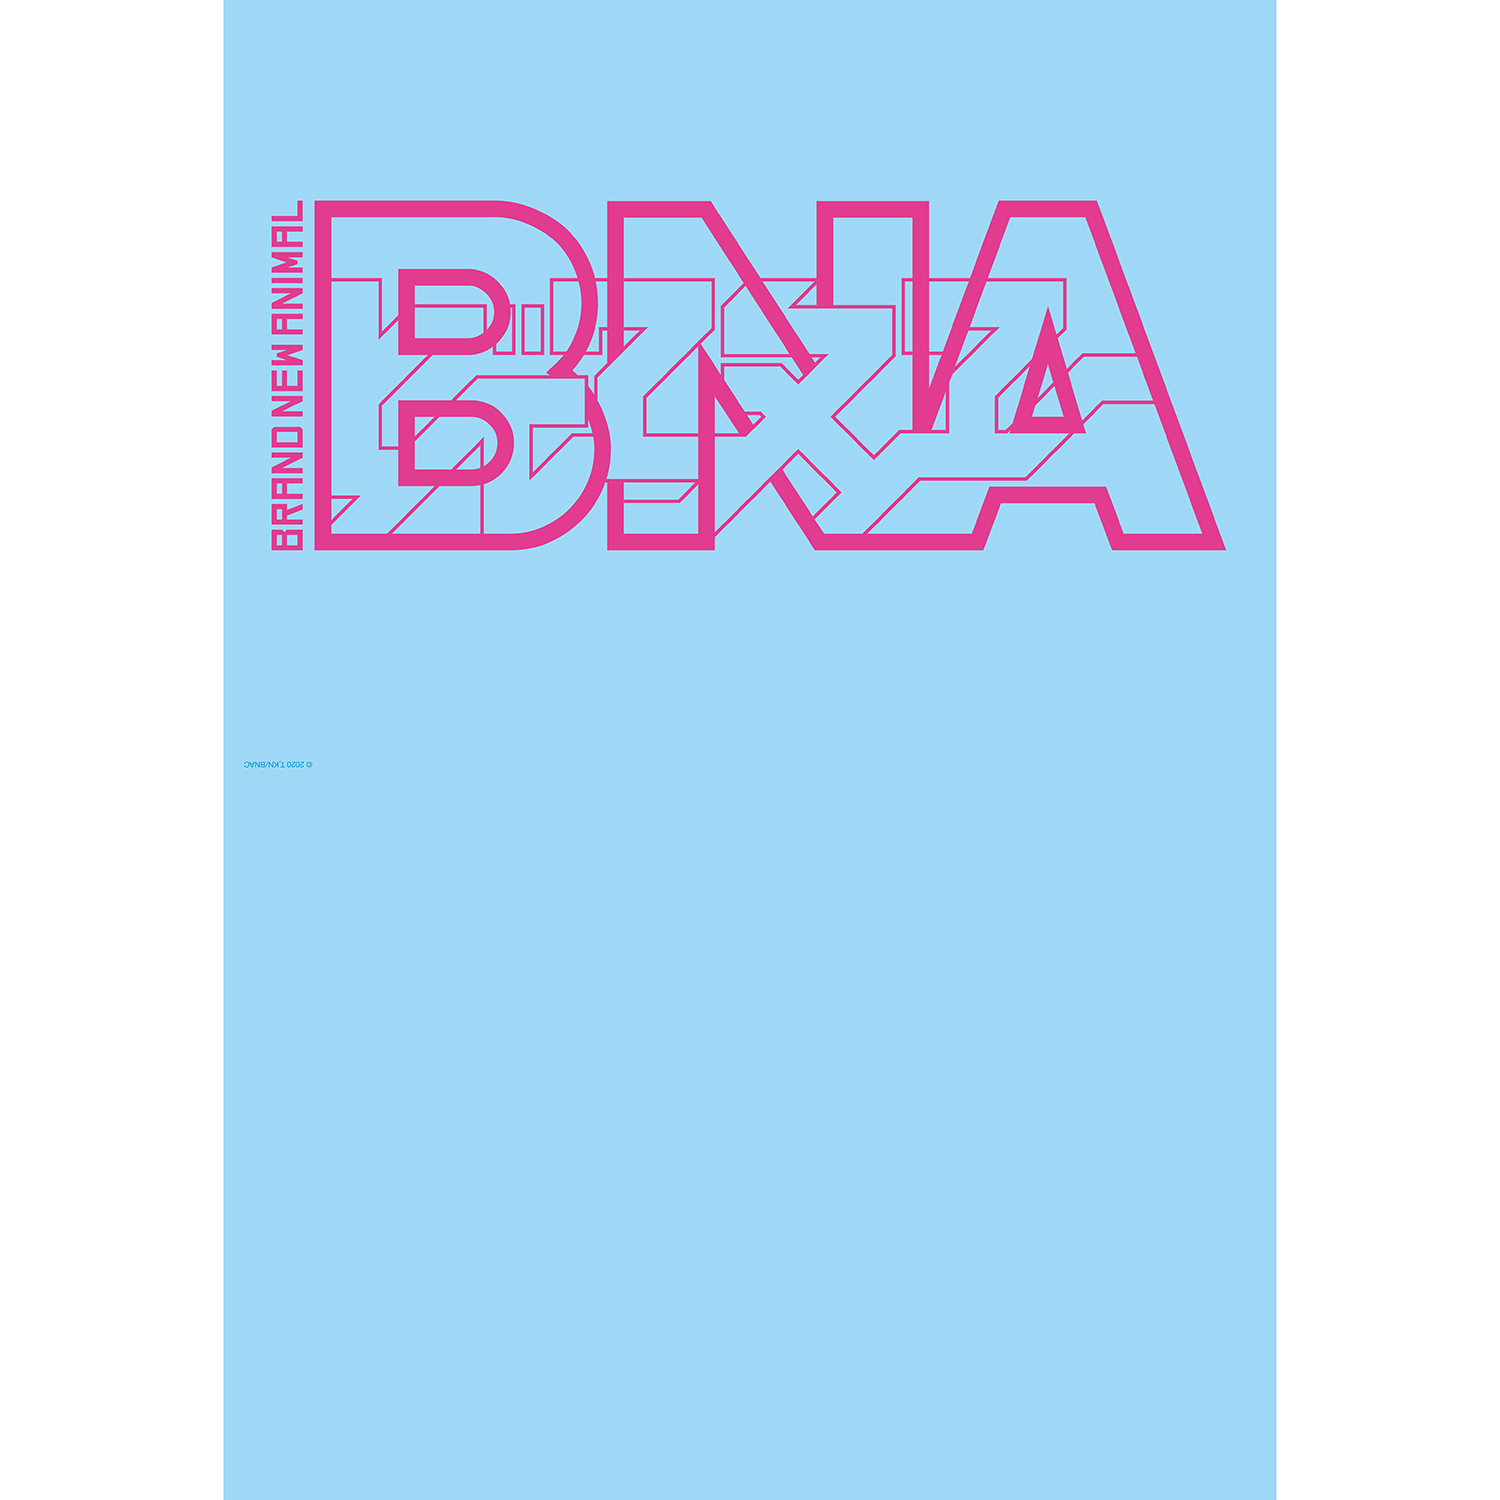 bna_clearfile_a_logo